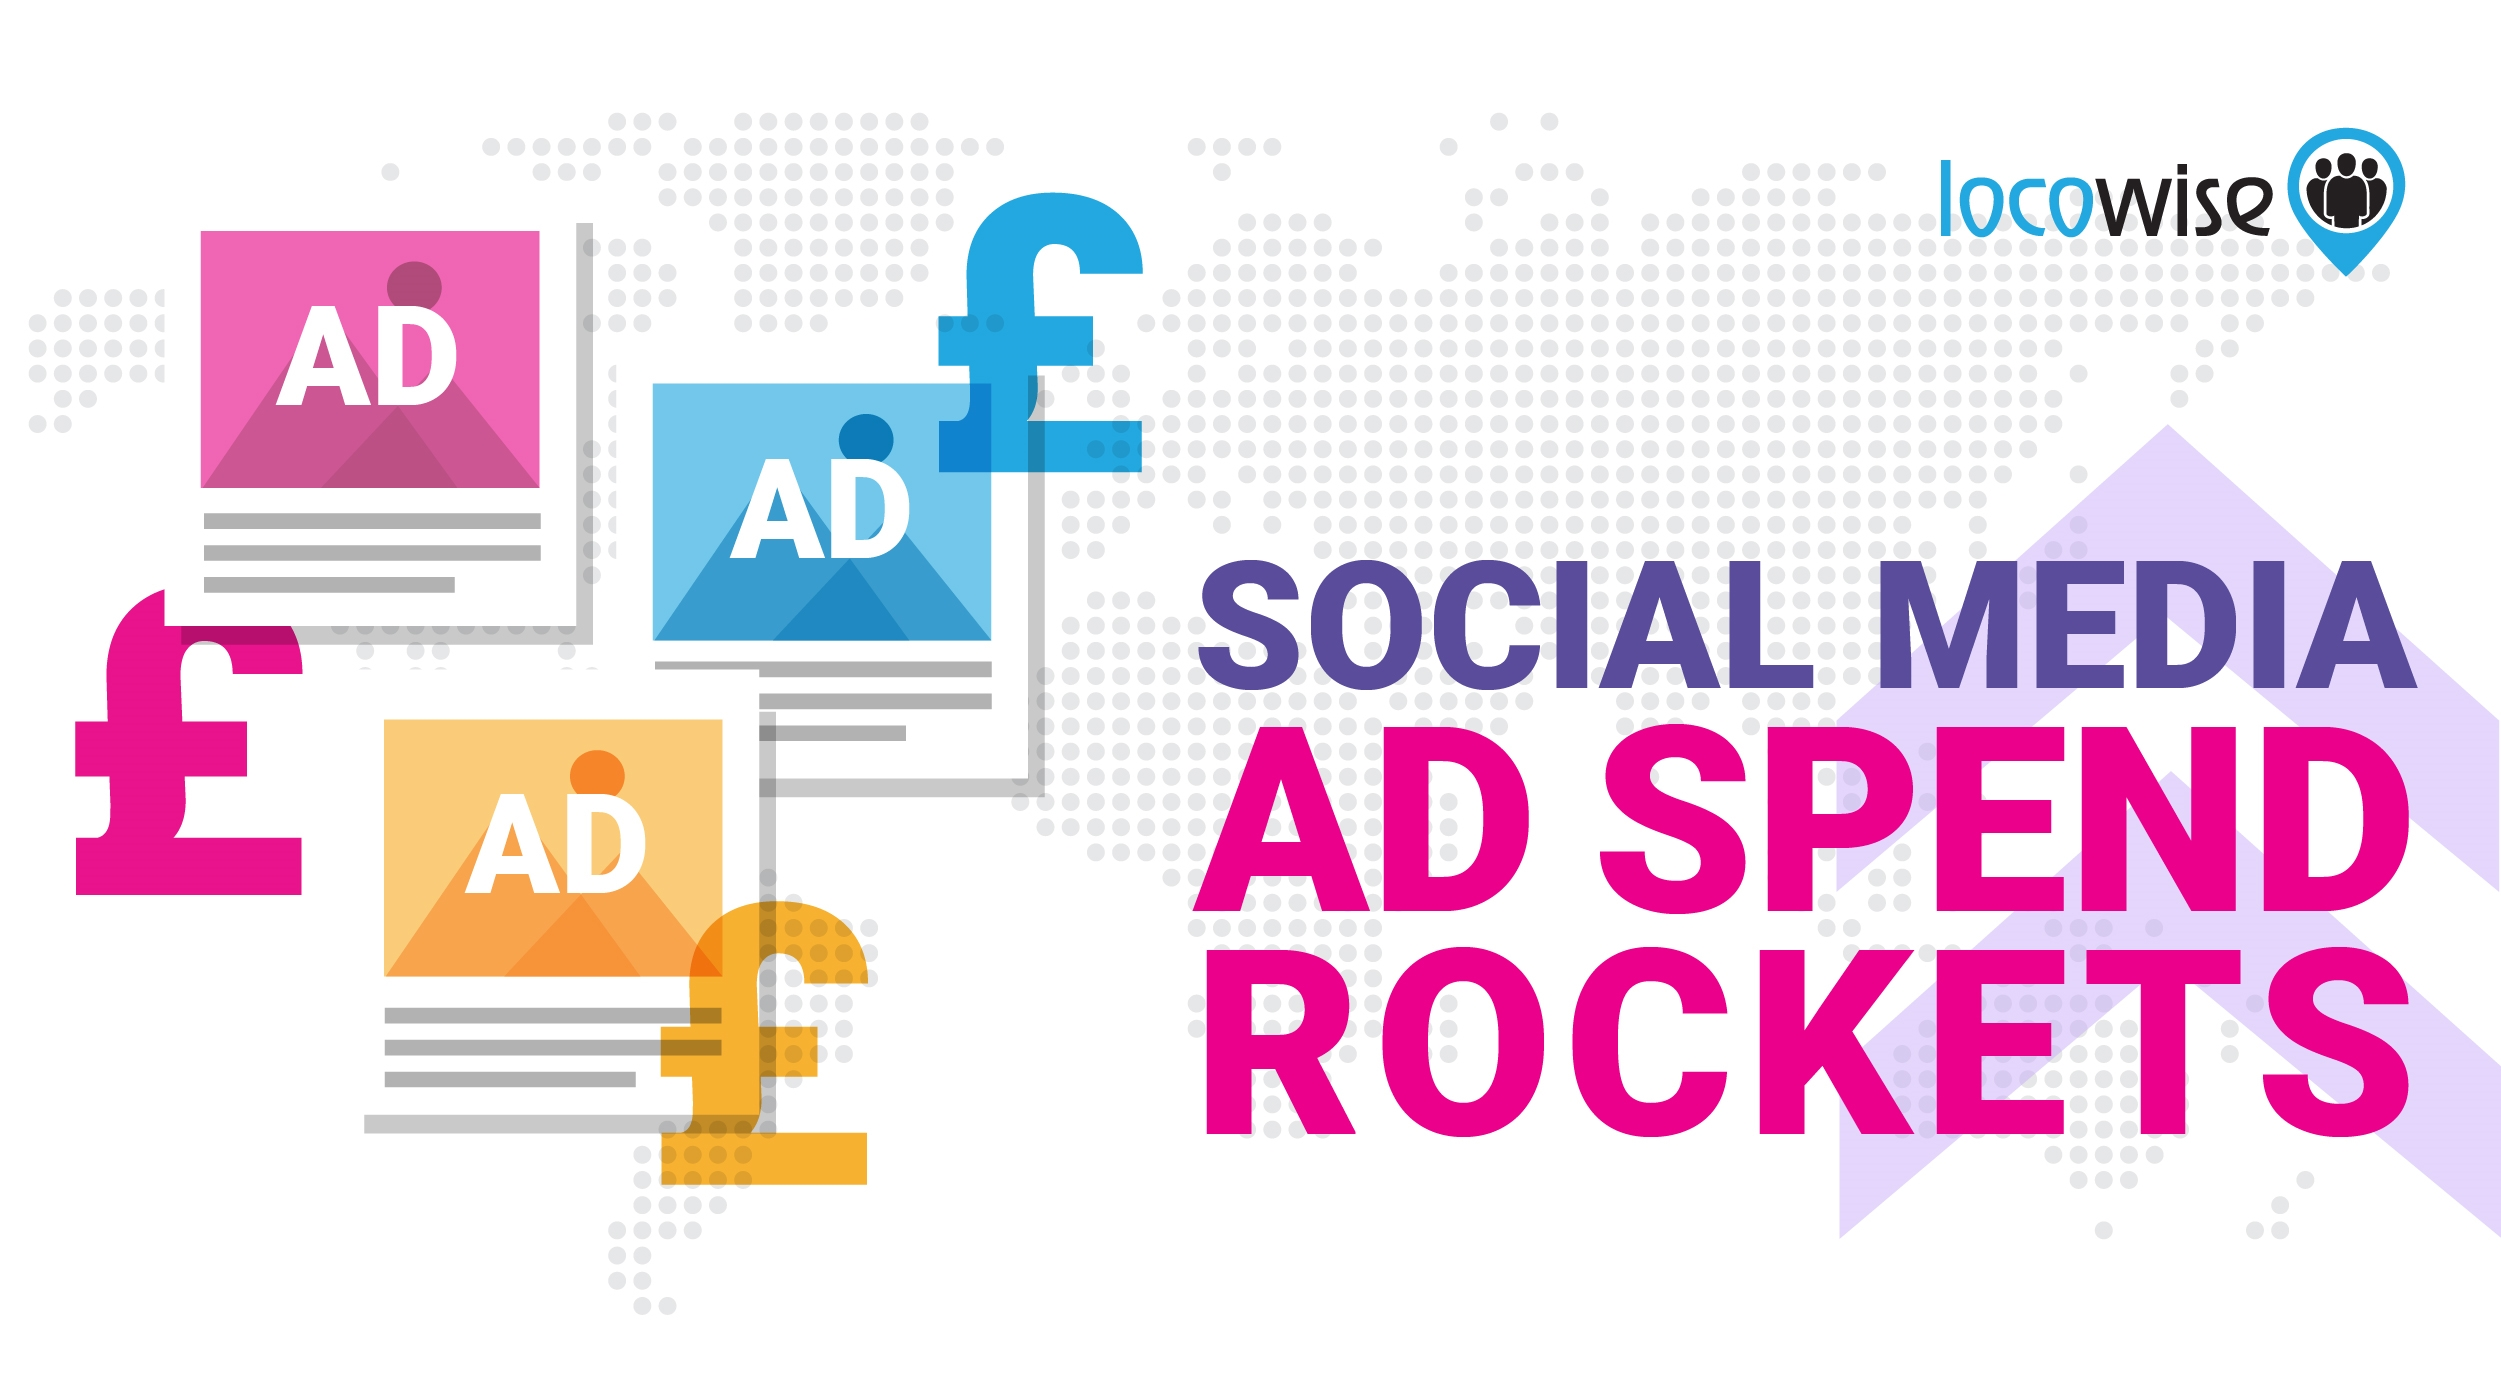 Global Social Media Ad Spend Rockets In Q3